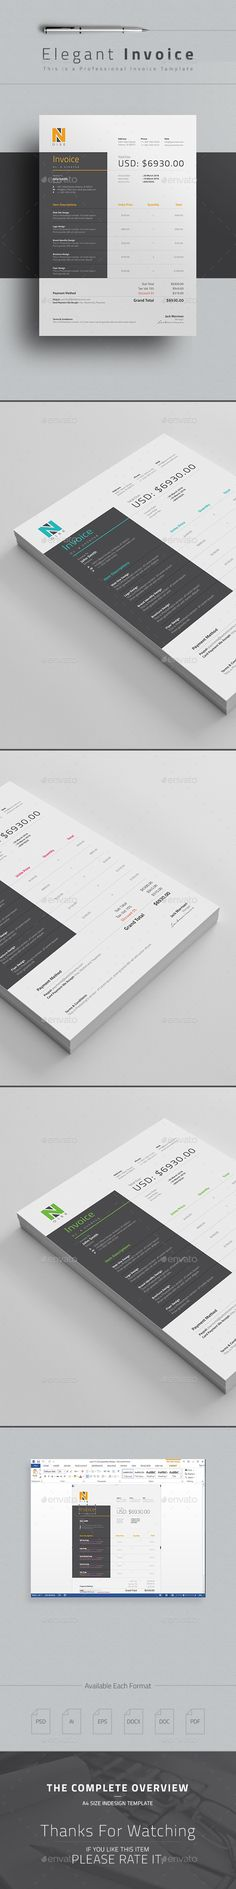 Clean / Corporate Invoice Template with super modern and professional look. Elegant page designs are easy to use and customize, so you can quickly tailor-make your company invoice or personal invoice Web Design, Form Design, Layout Design, Creative Design, Print Design, Invoice Design, Stationary Design, Invoice Template, Templates